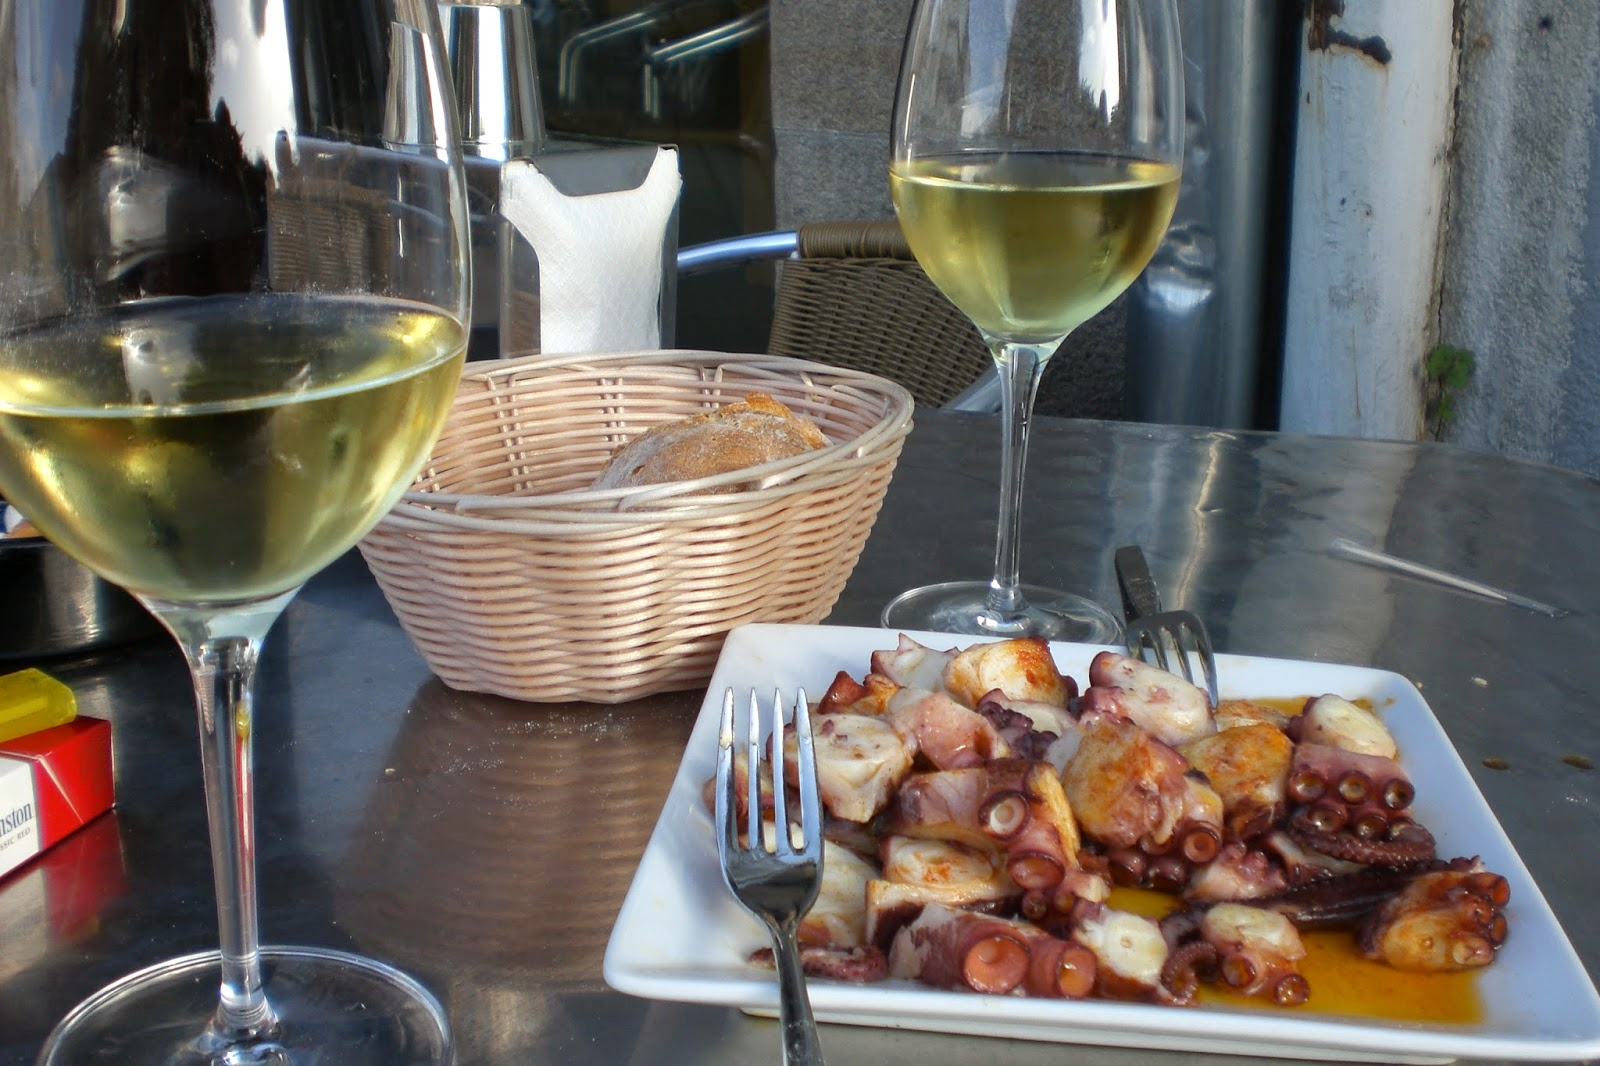 When in Santiago de Compostela do as the Galician's do and try a plate of pulpo washed down with a glass of wine.